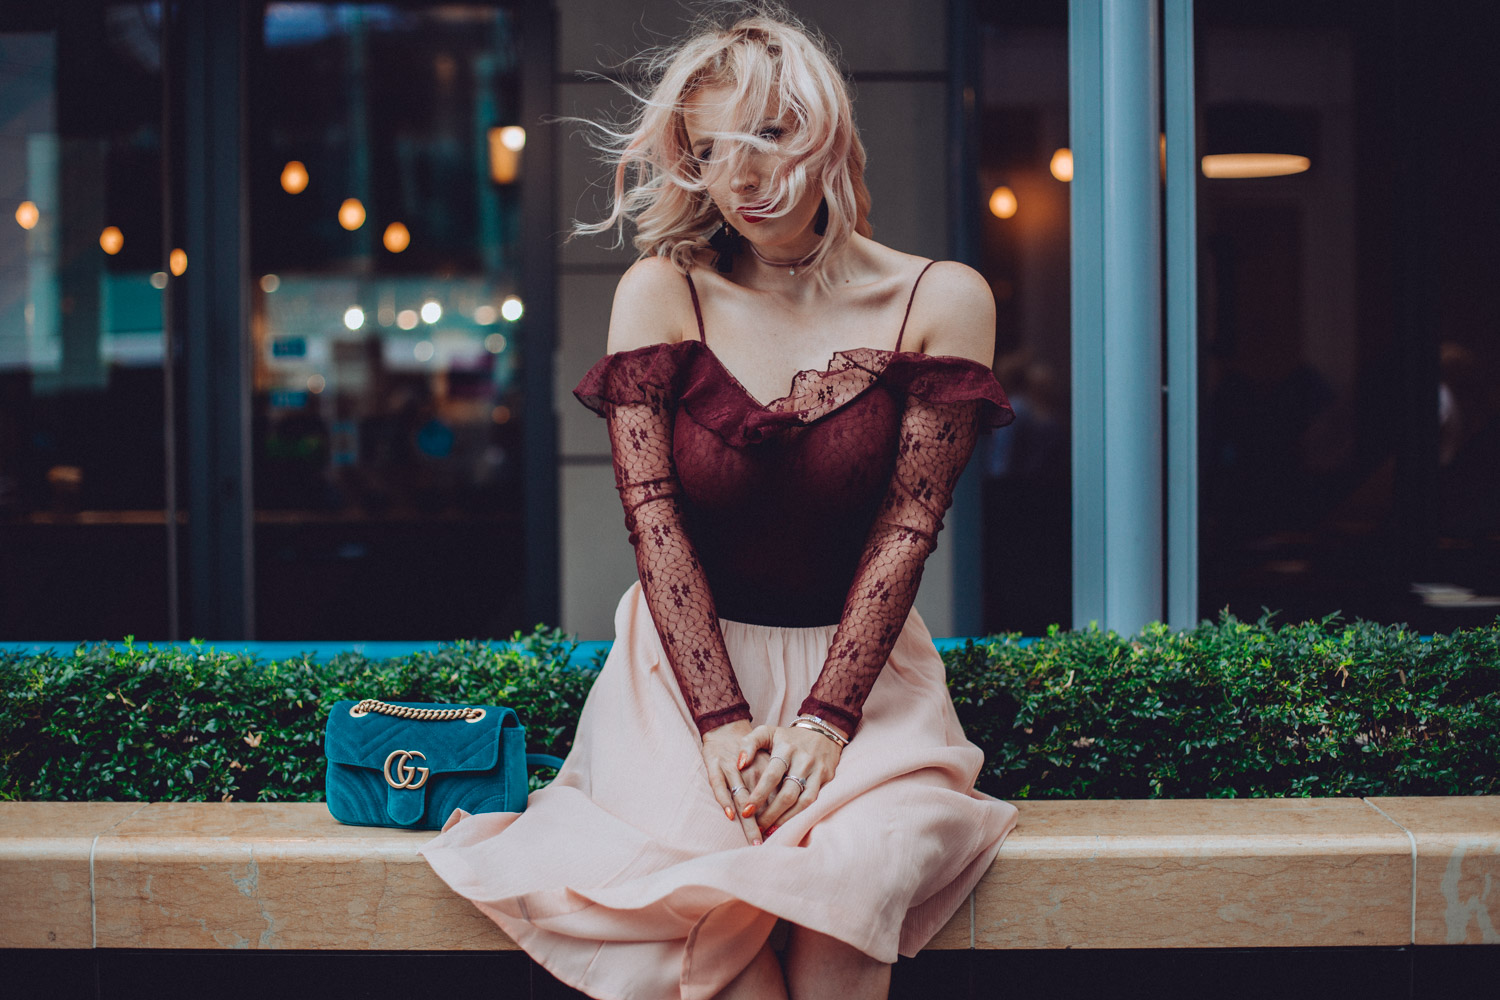 Gucci Velvet Marmont, Miu Miu Sunglasses, lace body and pink skirt. fashion blogger style